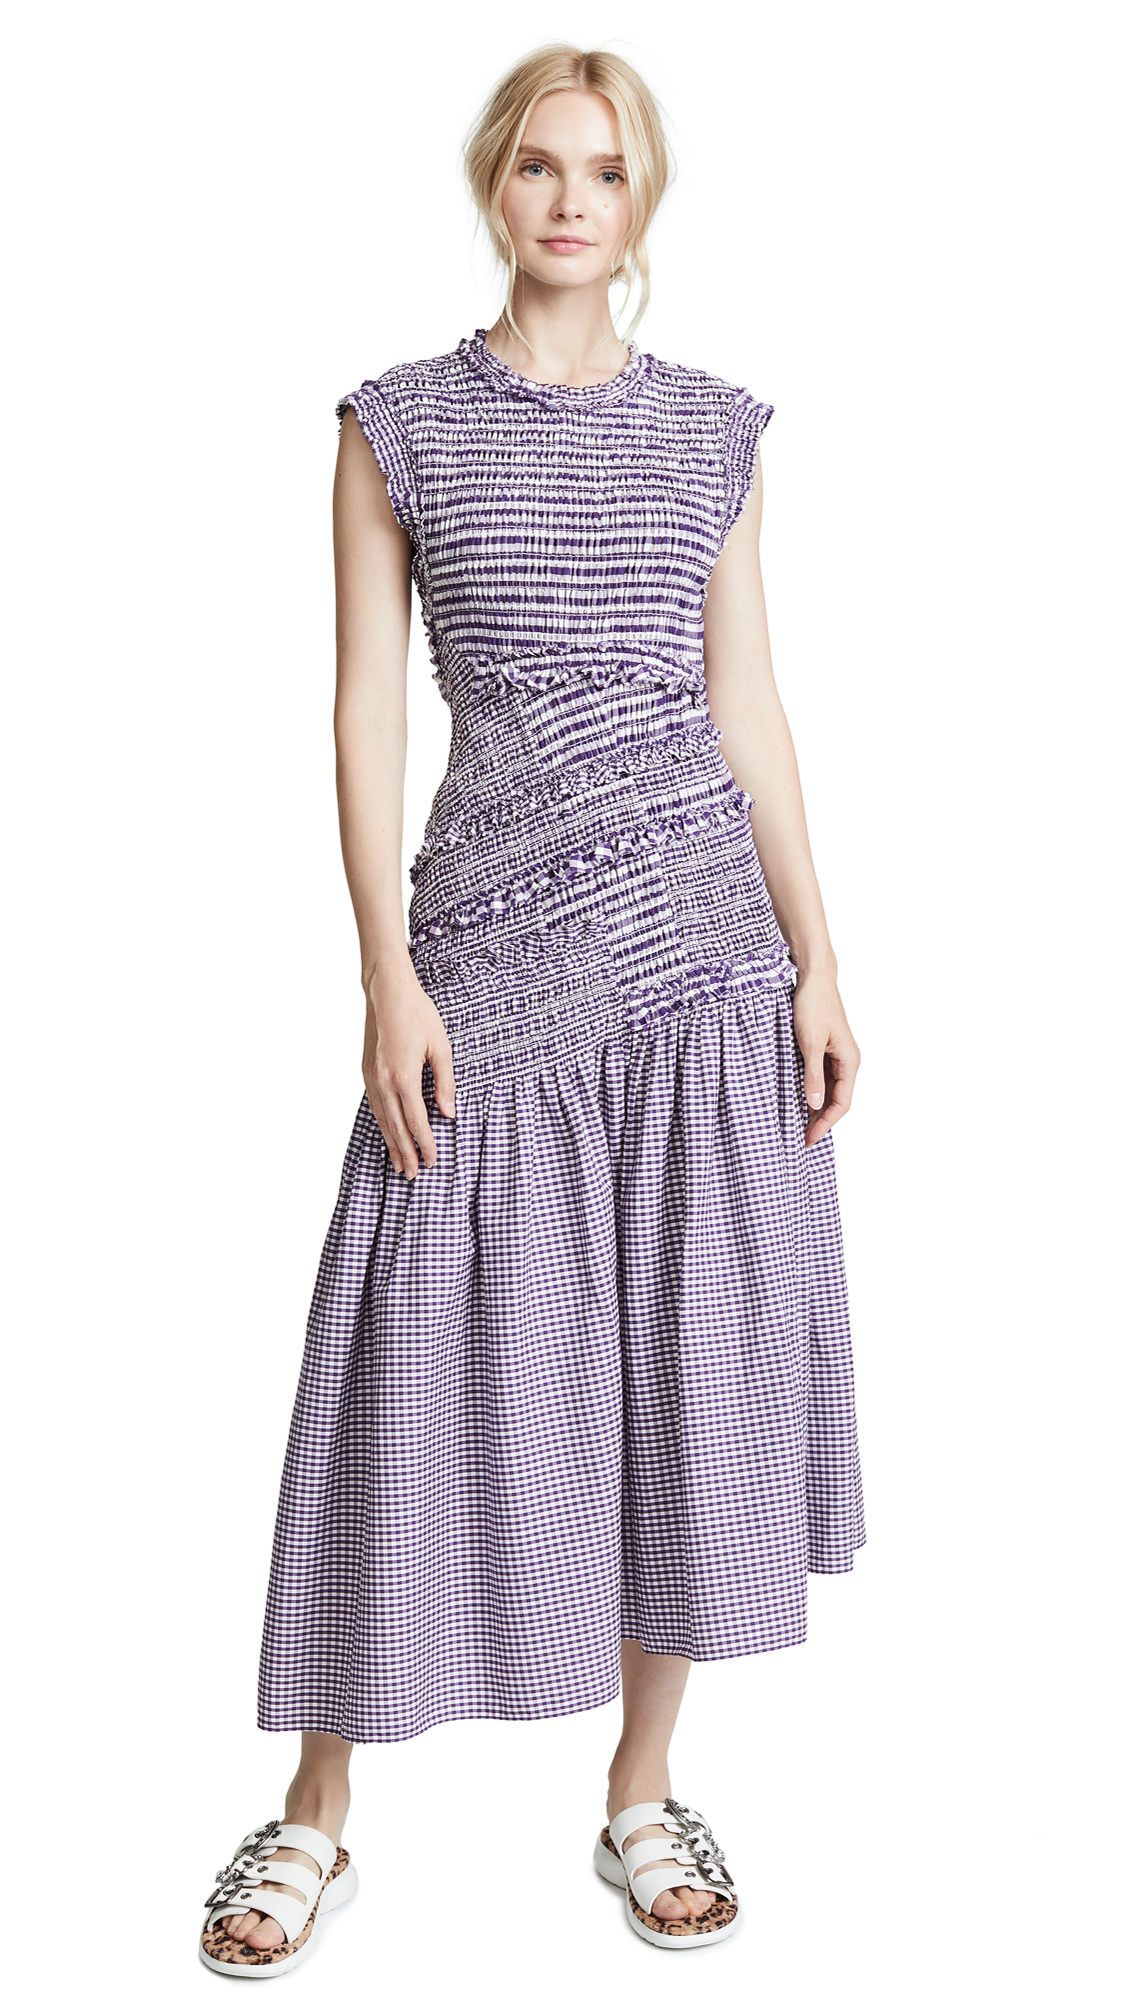 3.1 Phillip Lim Drop Waist Dress In Purple/White